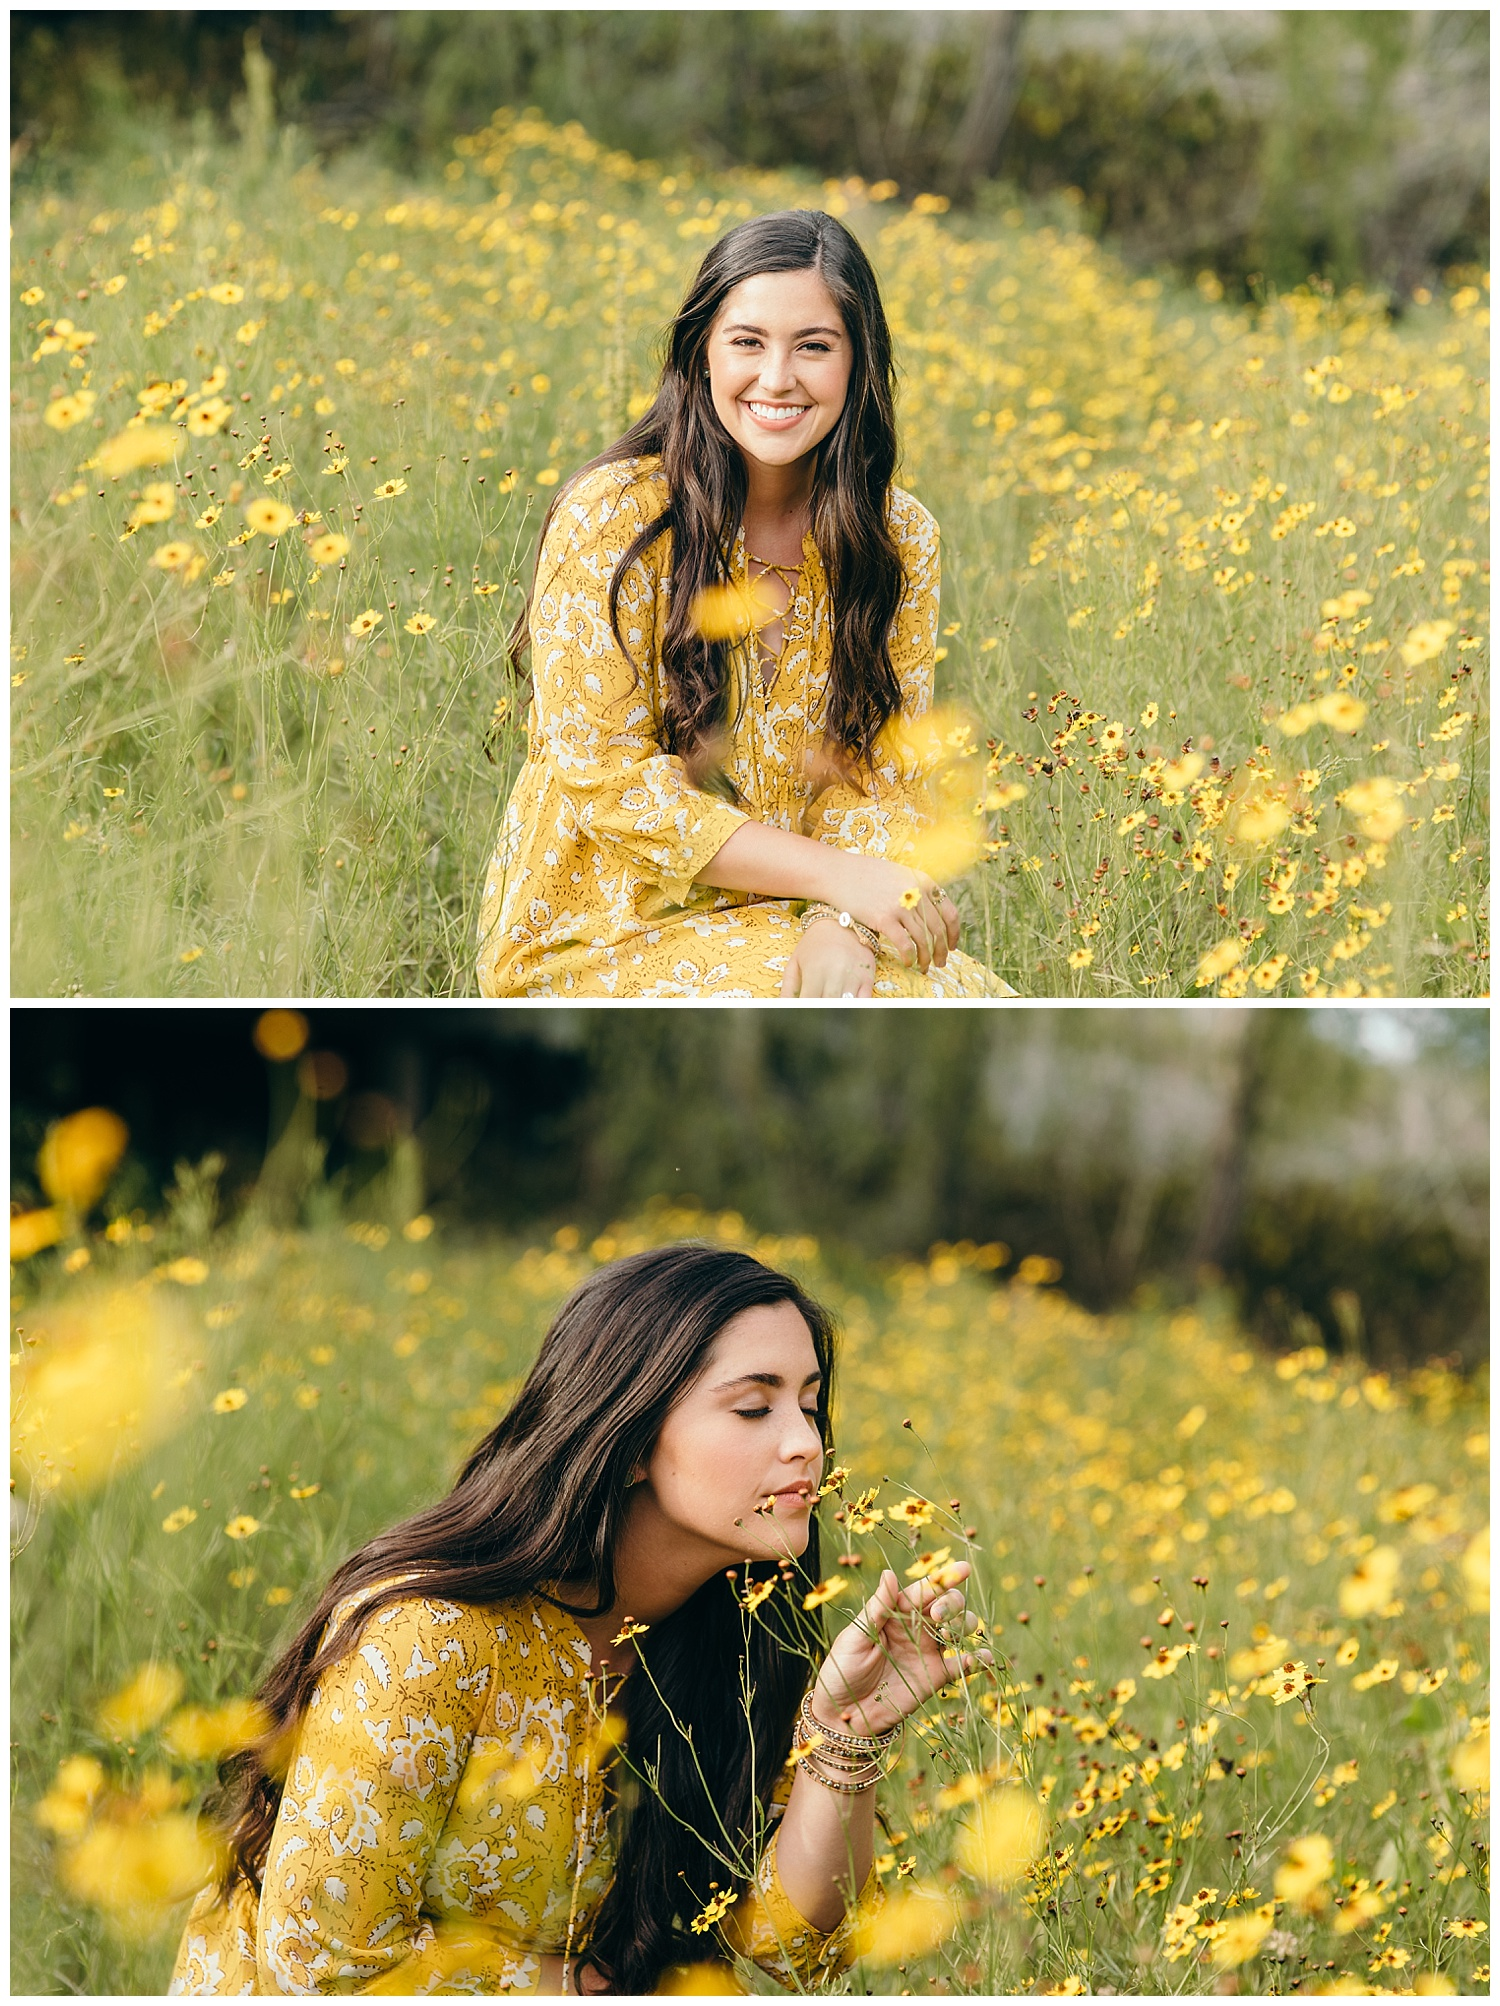 senior girl in field of yellow flowers